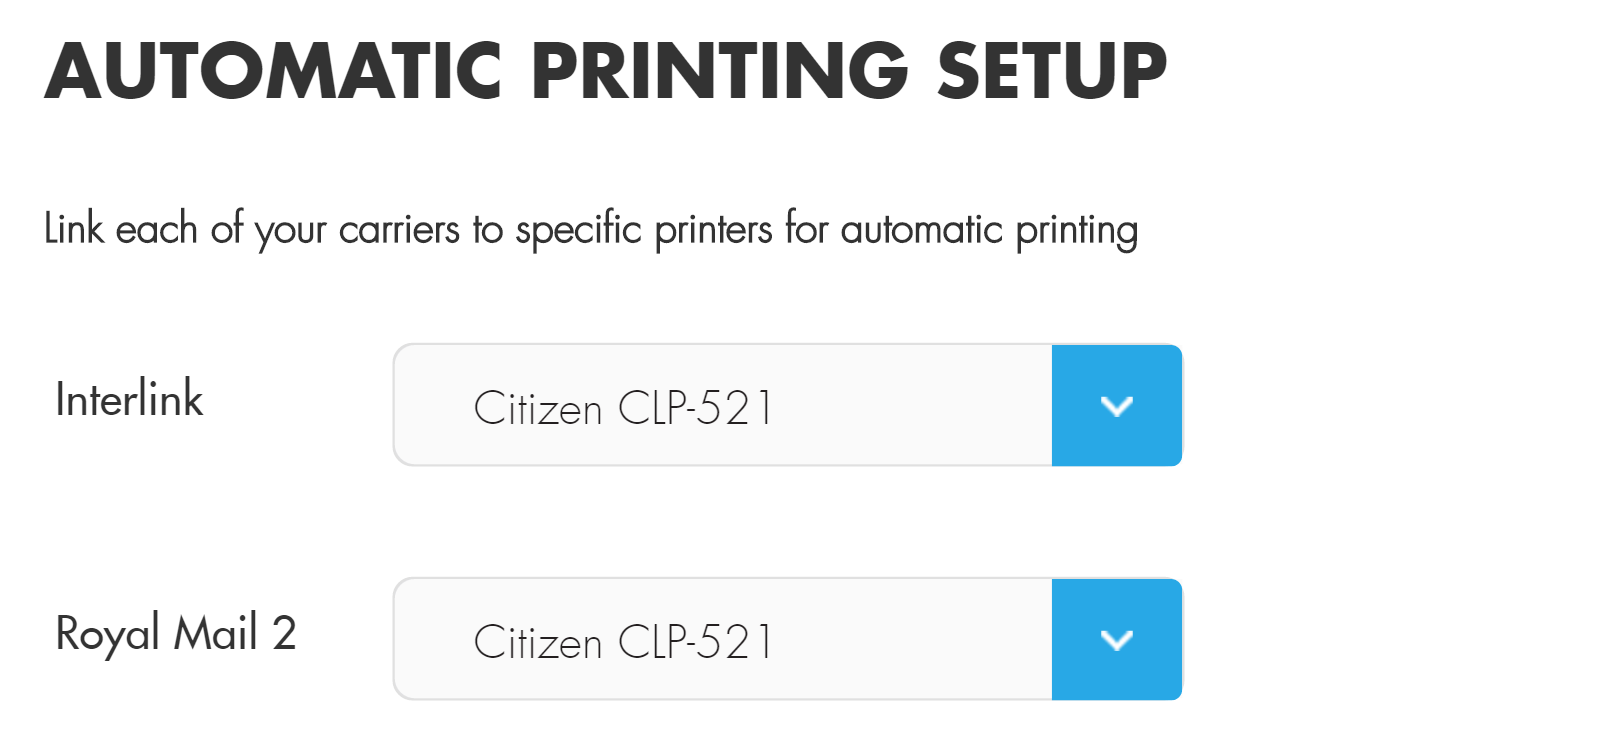 How to Set up Automatic Printing from a Mobile Device recommend